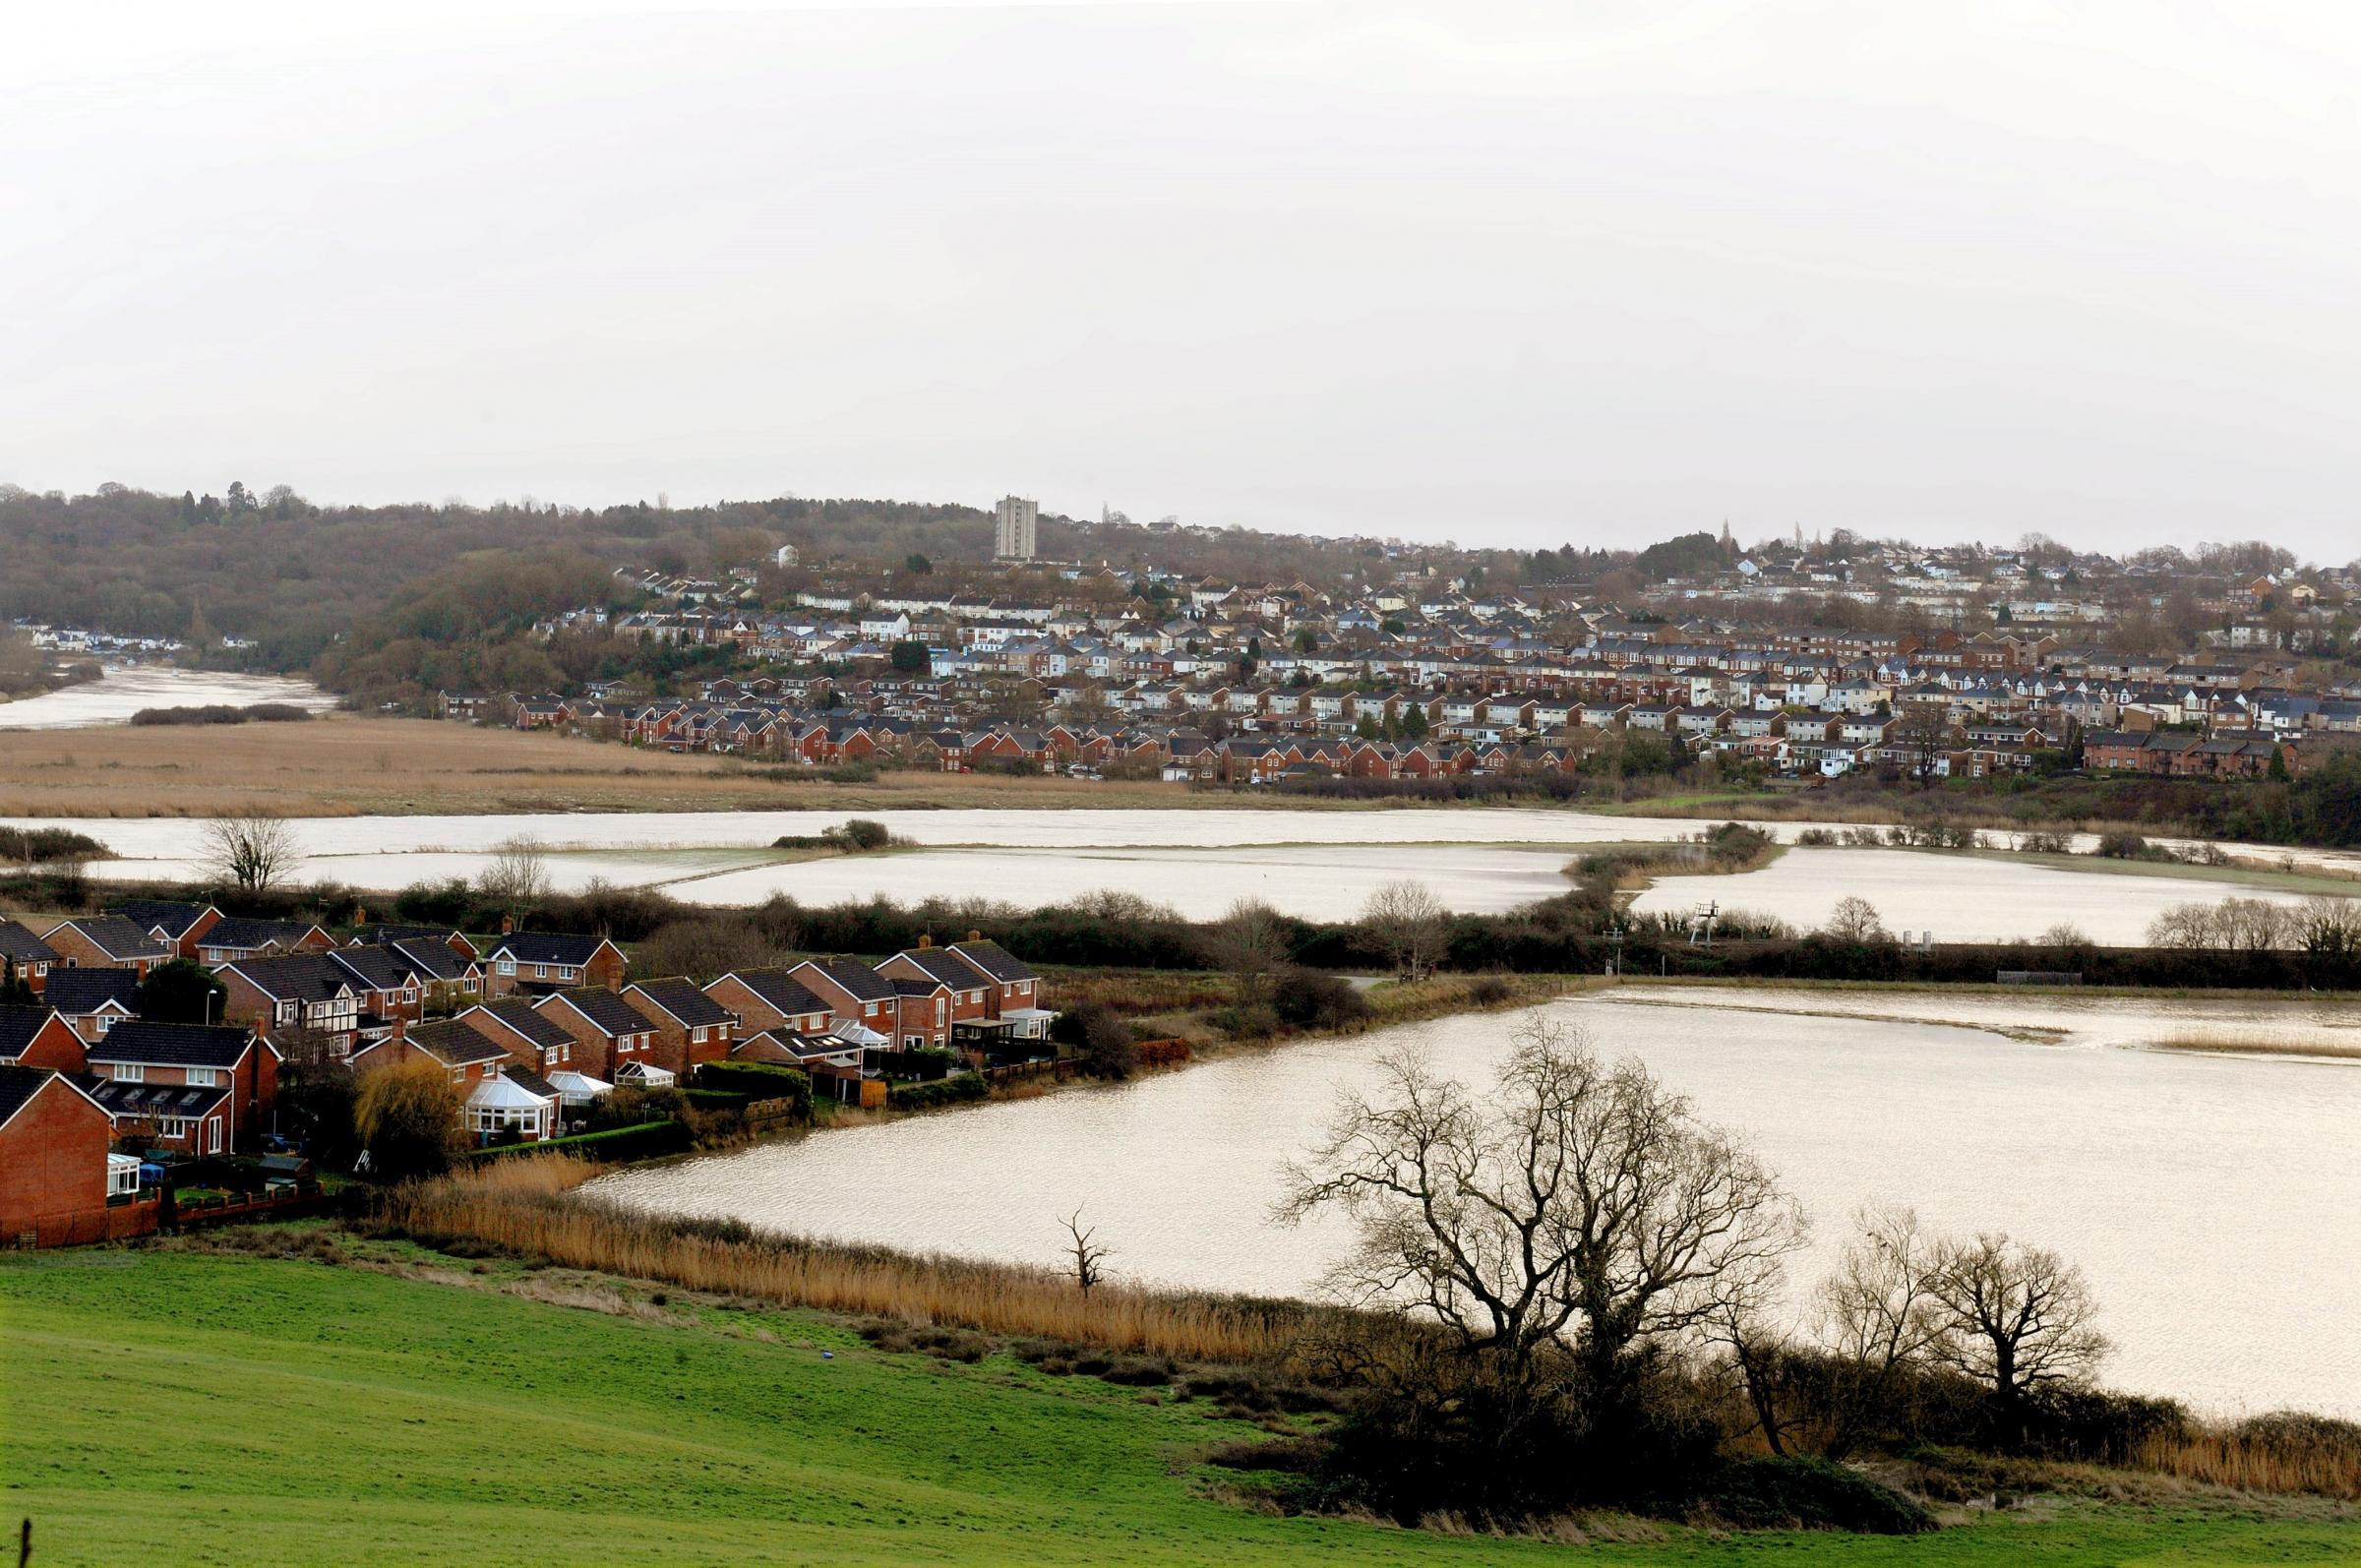 Panoramic view from Pillmawr Road in Caerleon of the flooding of the river Usk. (3238683)